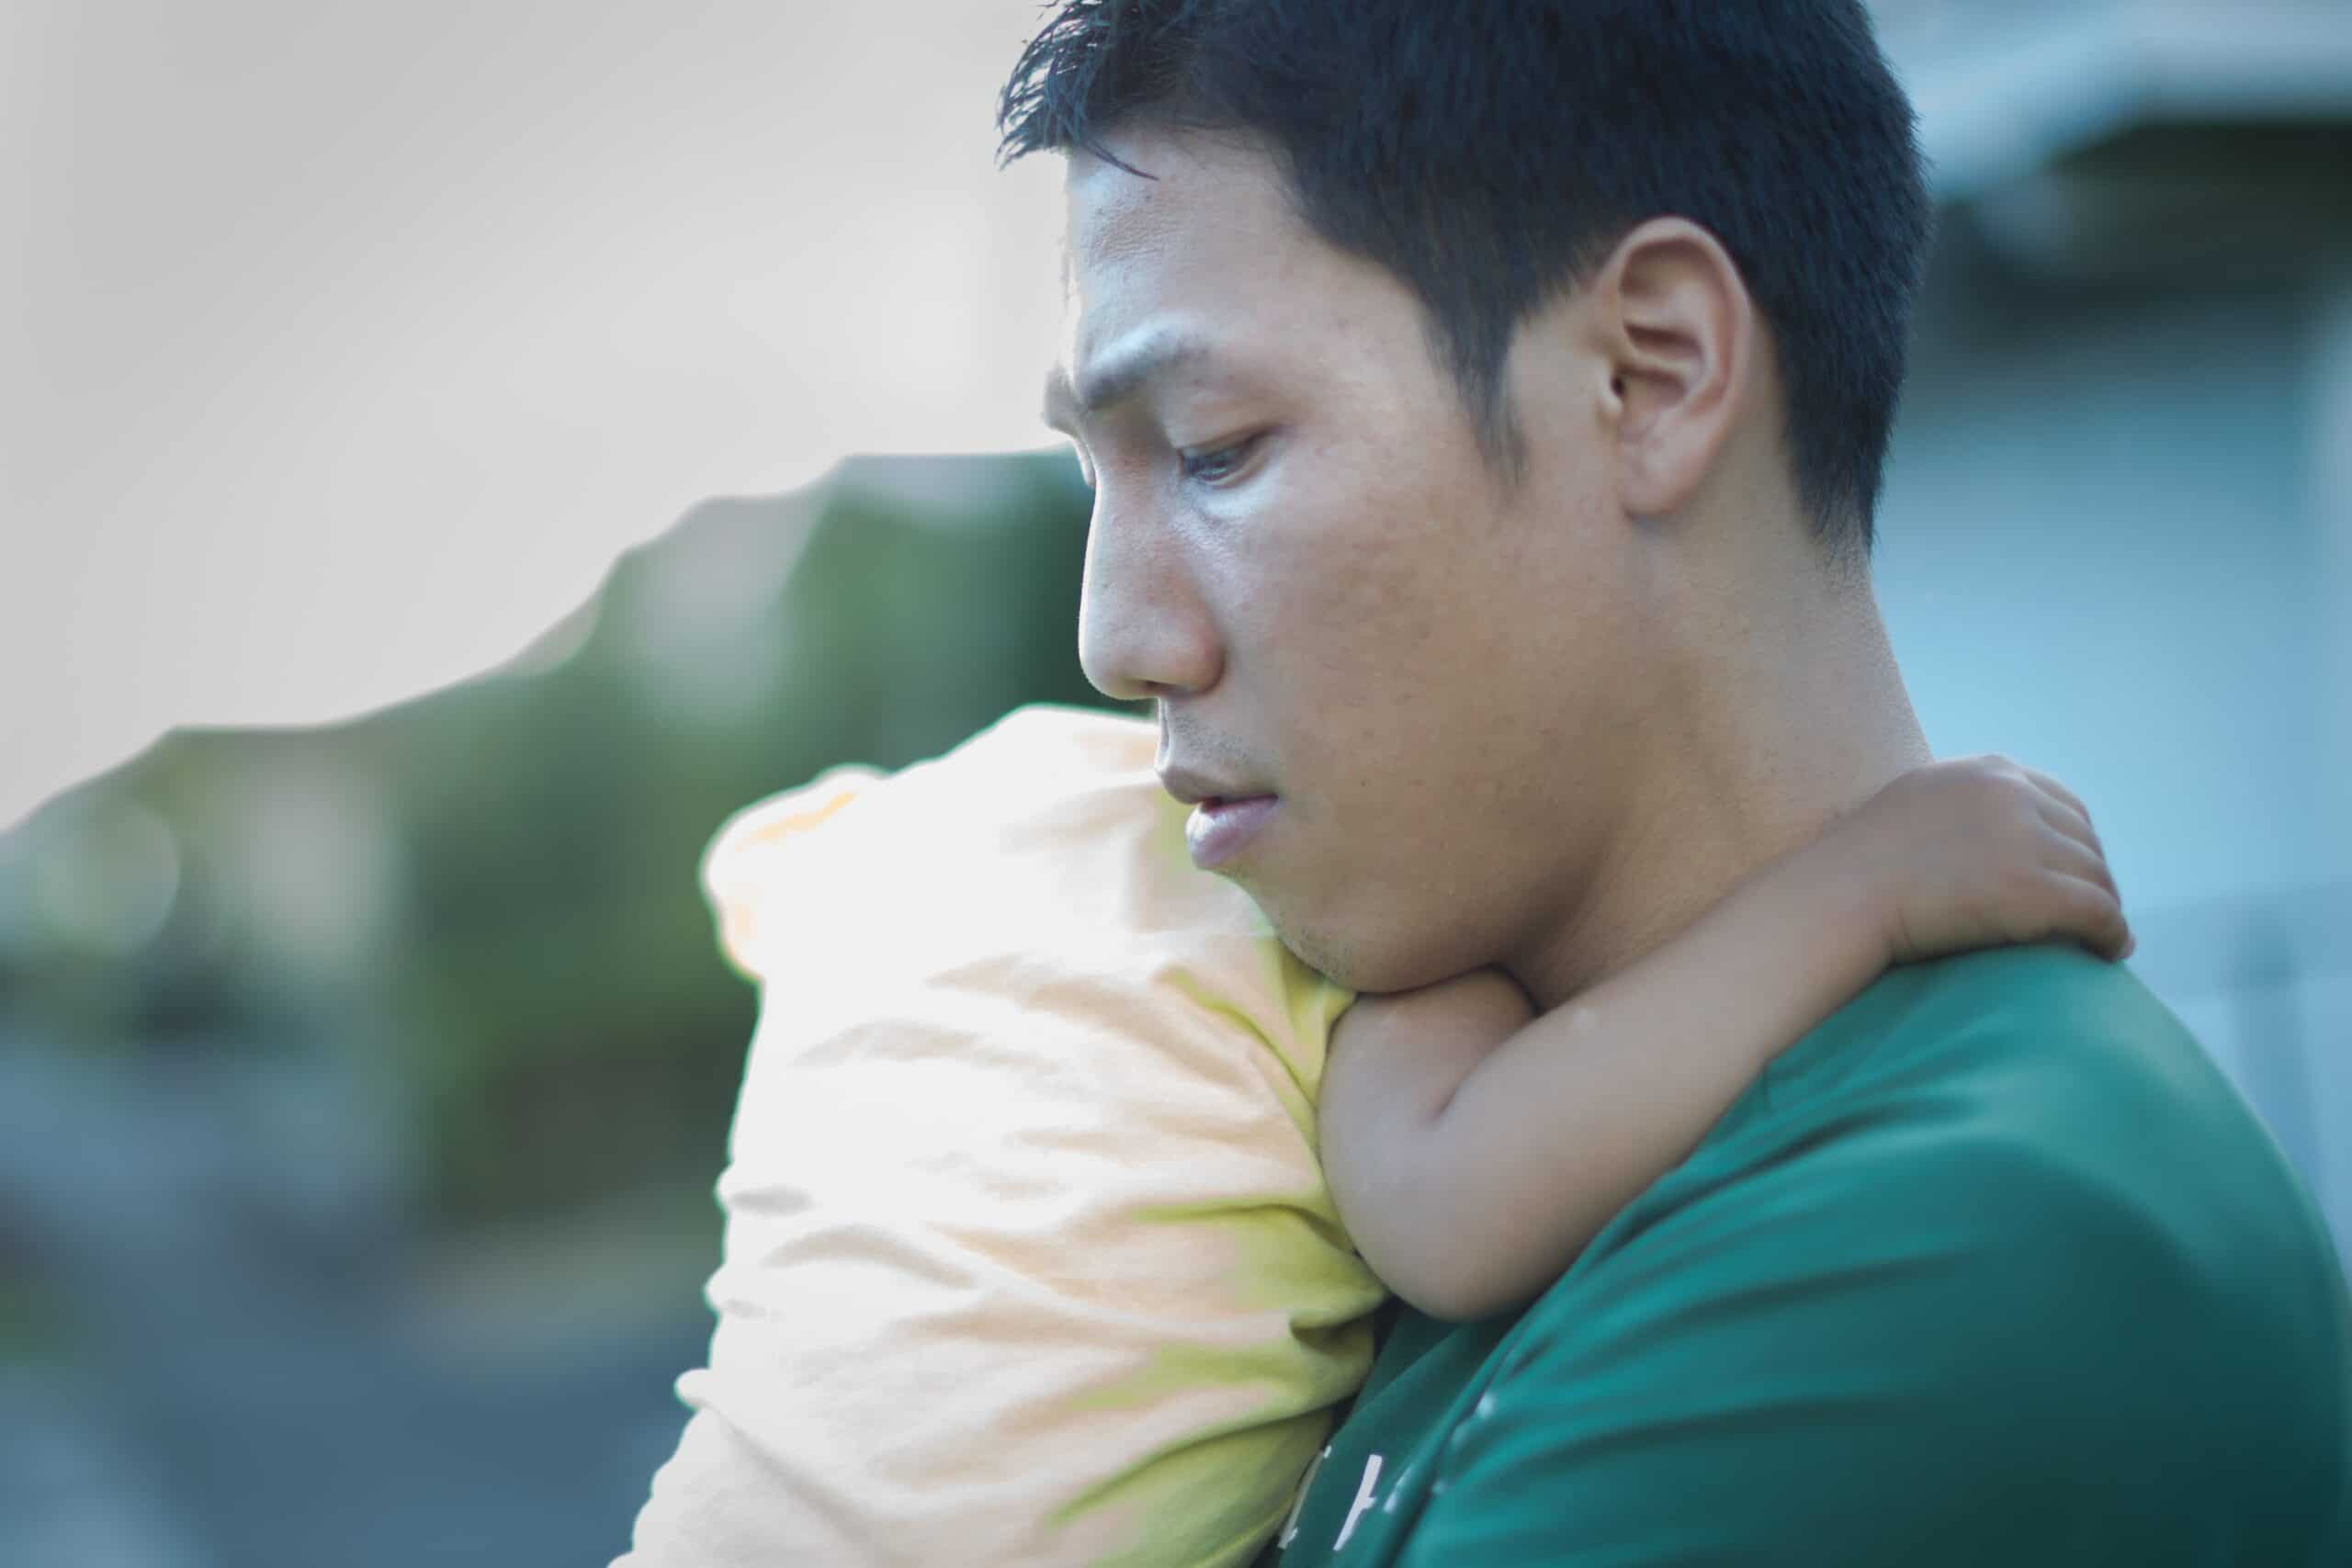 could I have Male Postnatal Depression